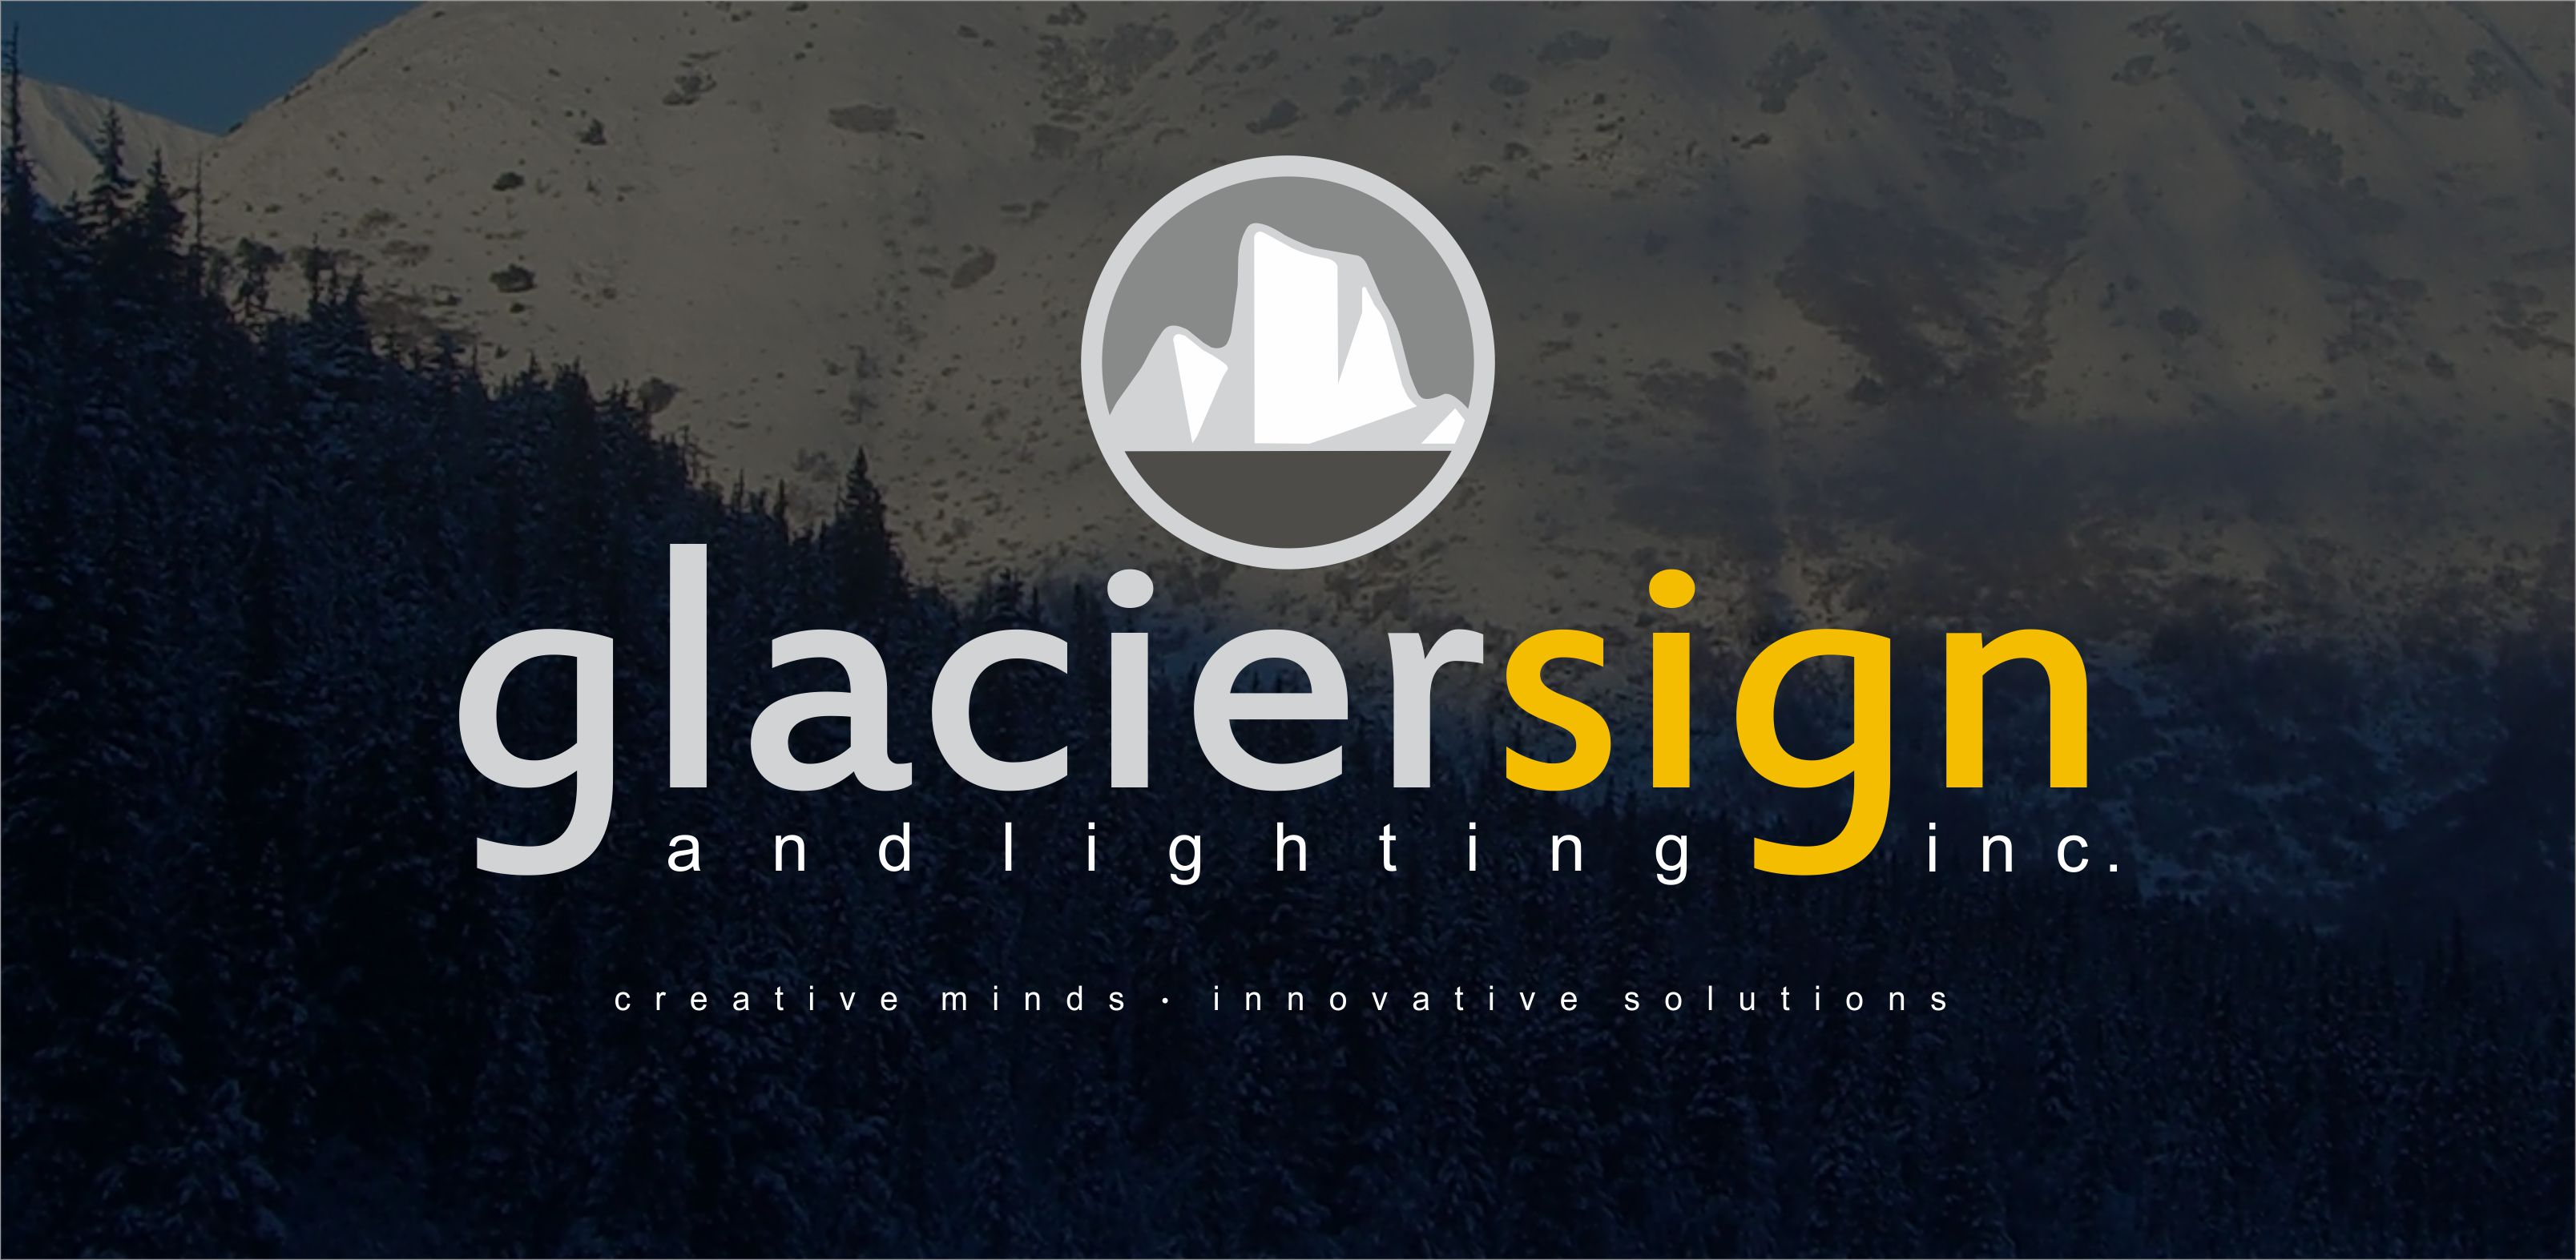 Glacier Sign & Lighting Inc